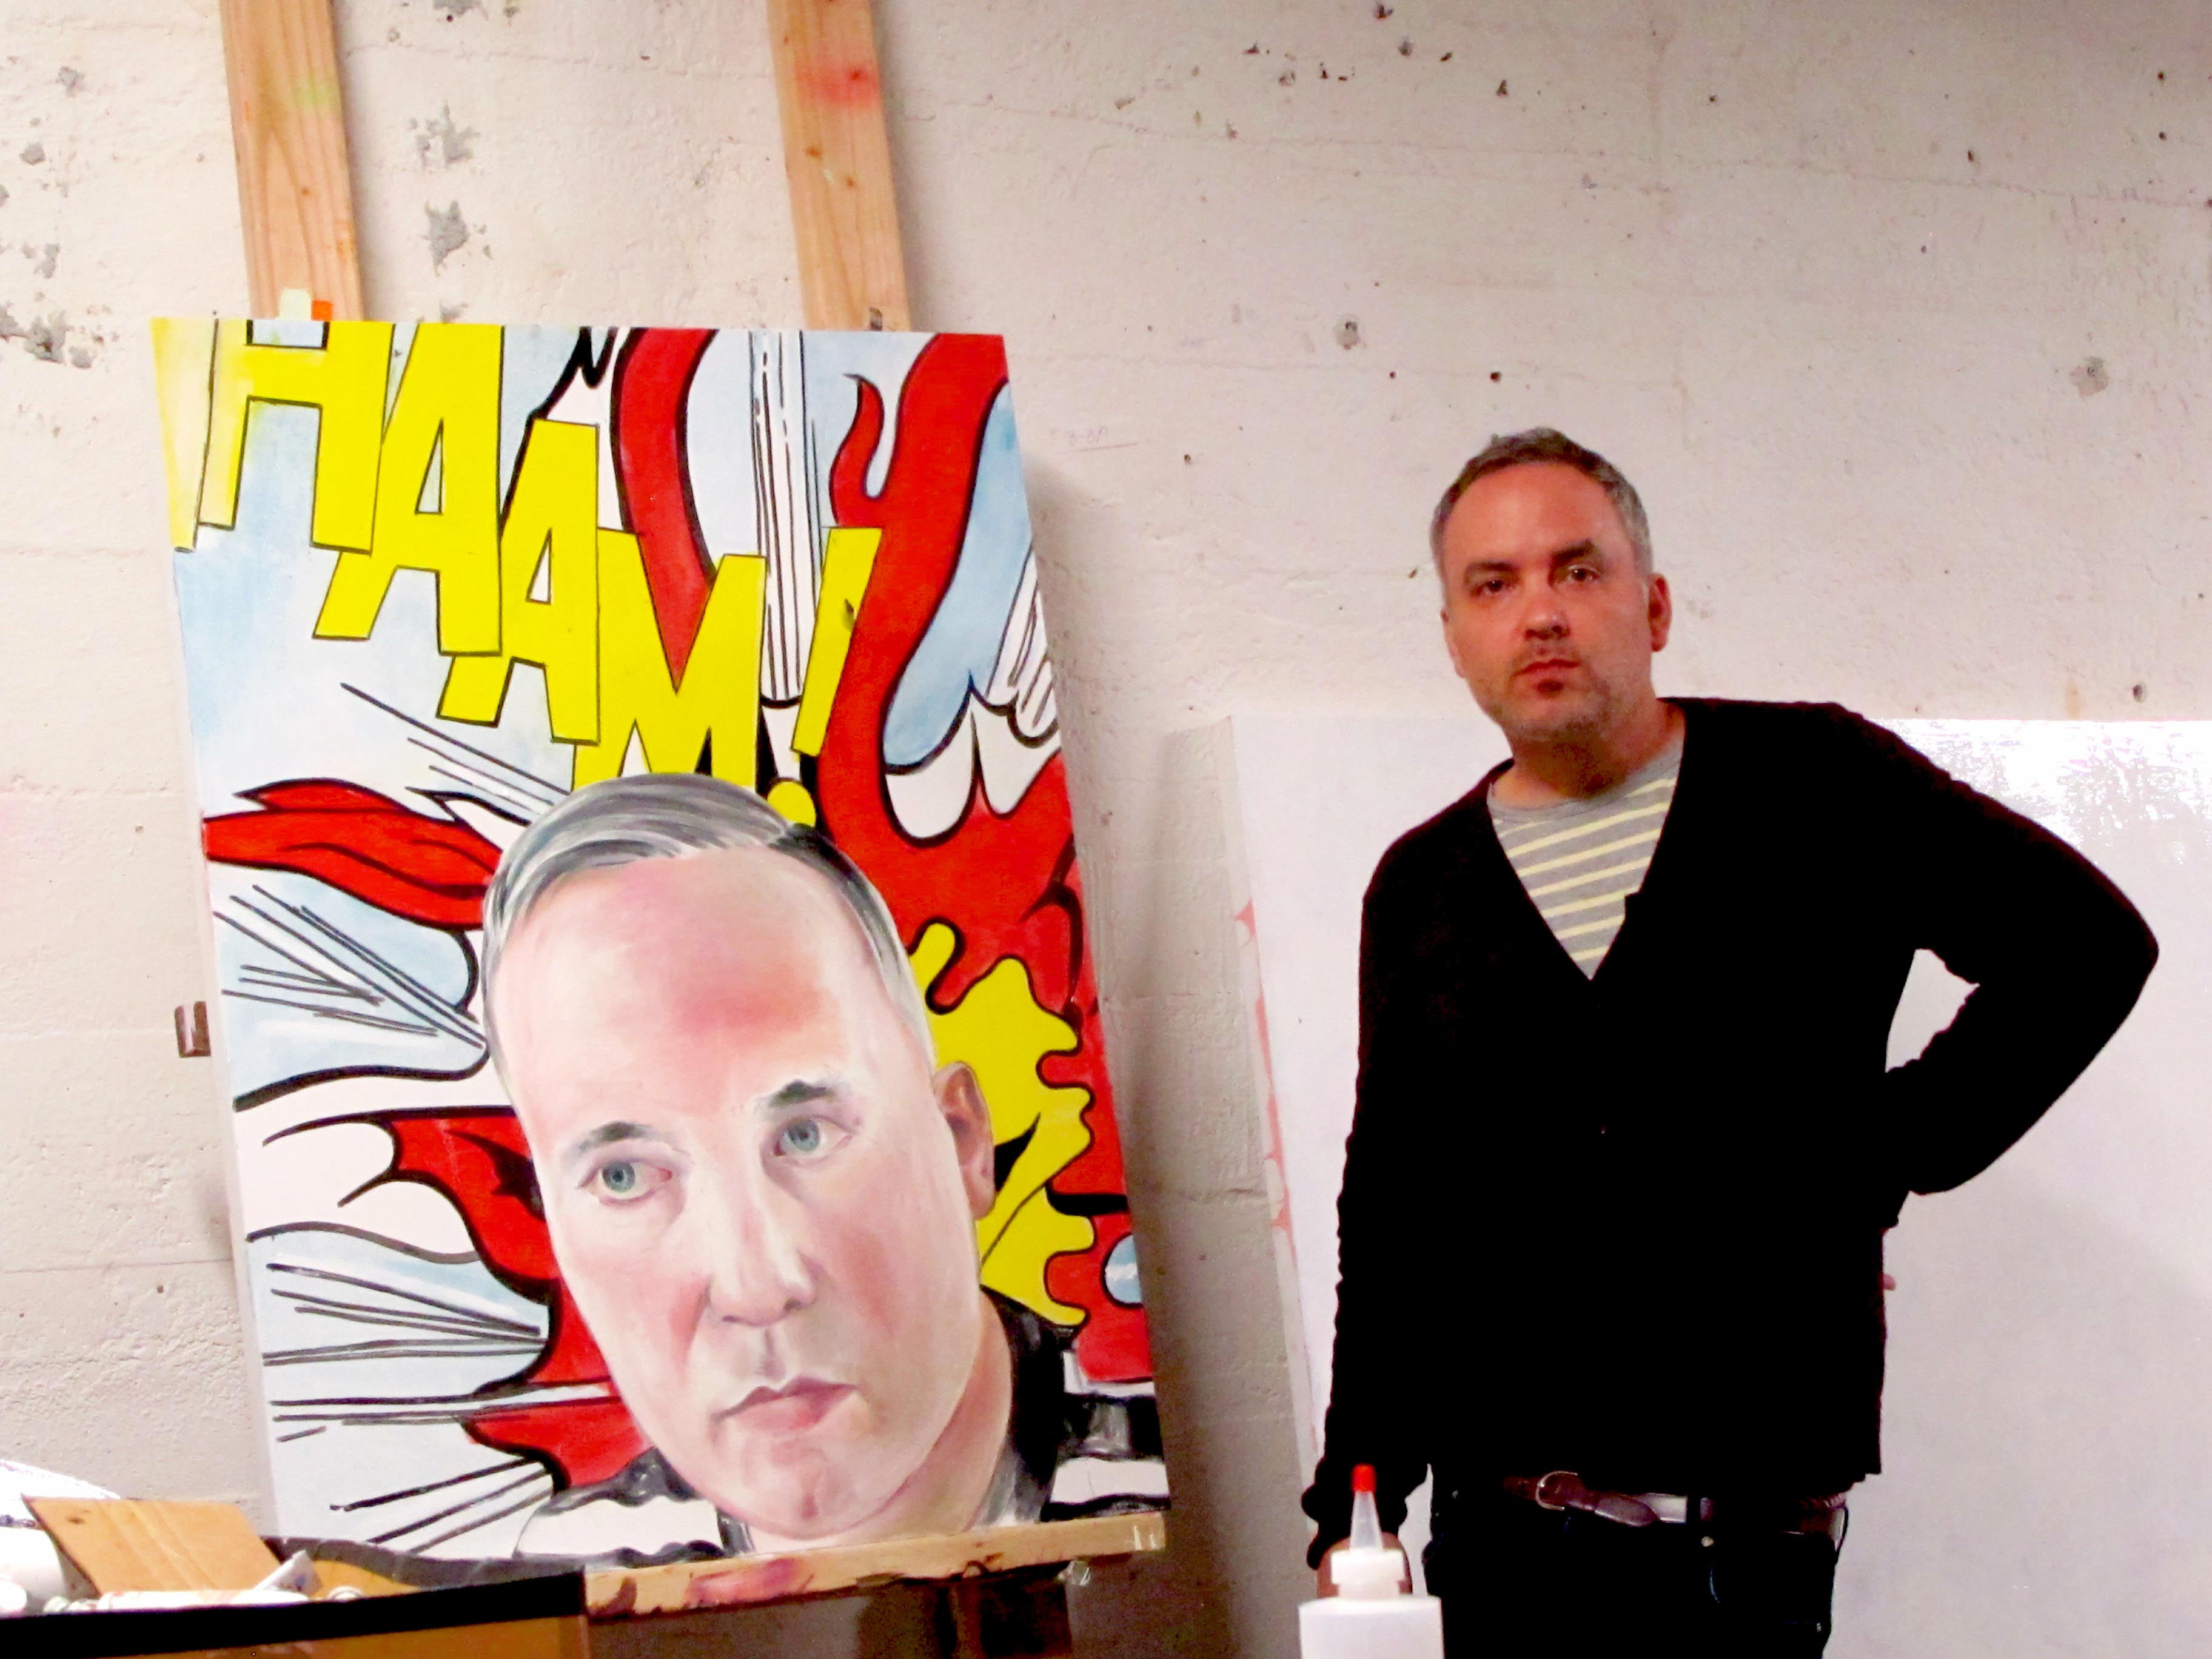 Noah Becker at his studio